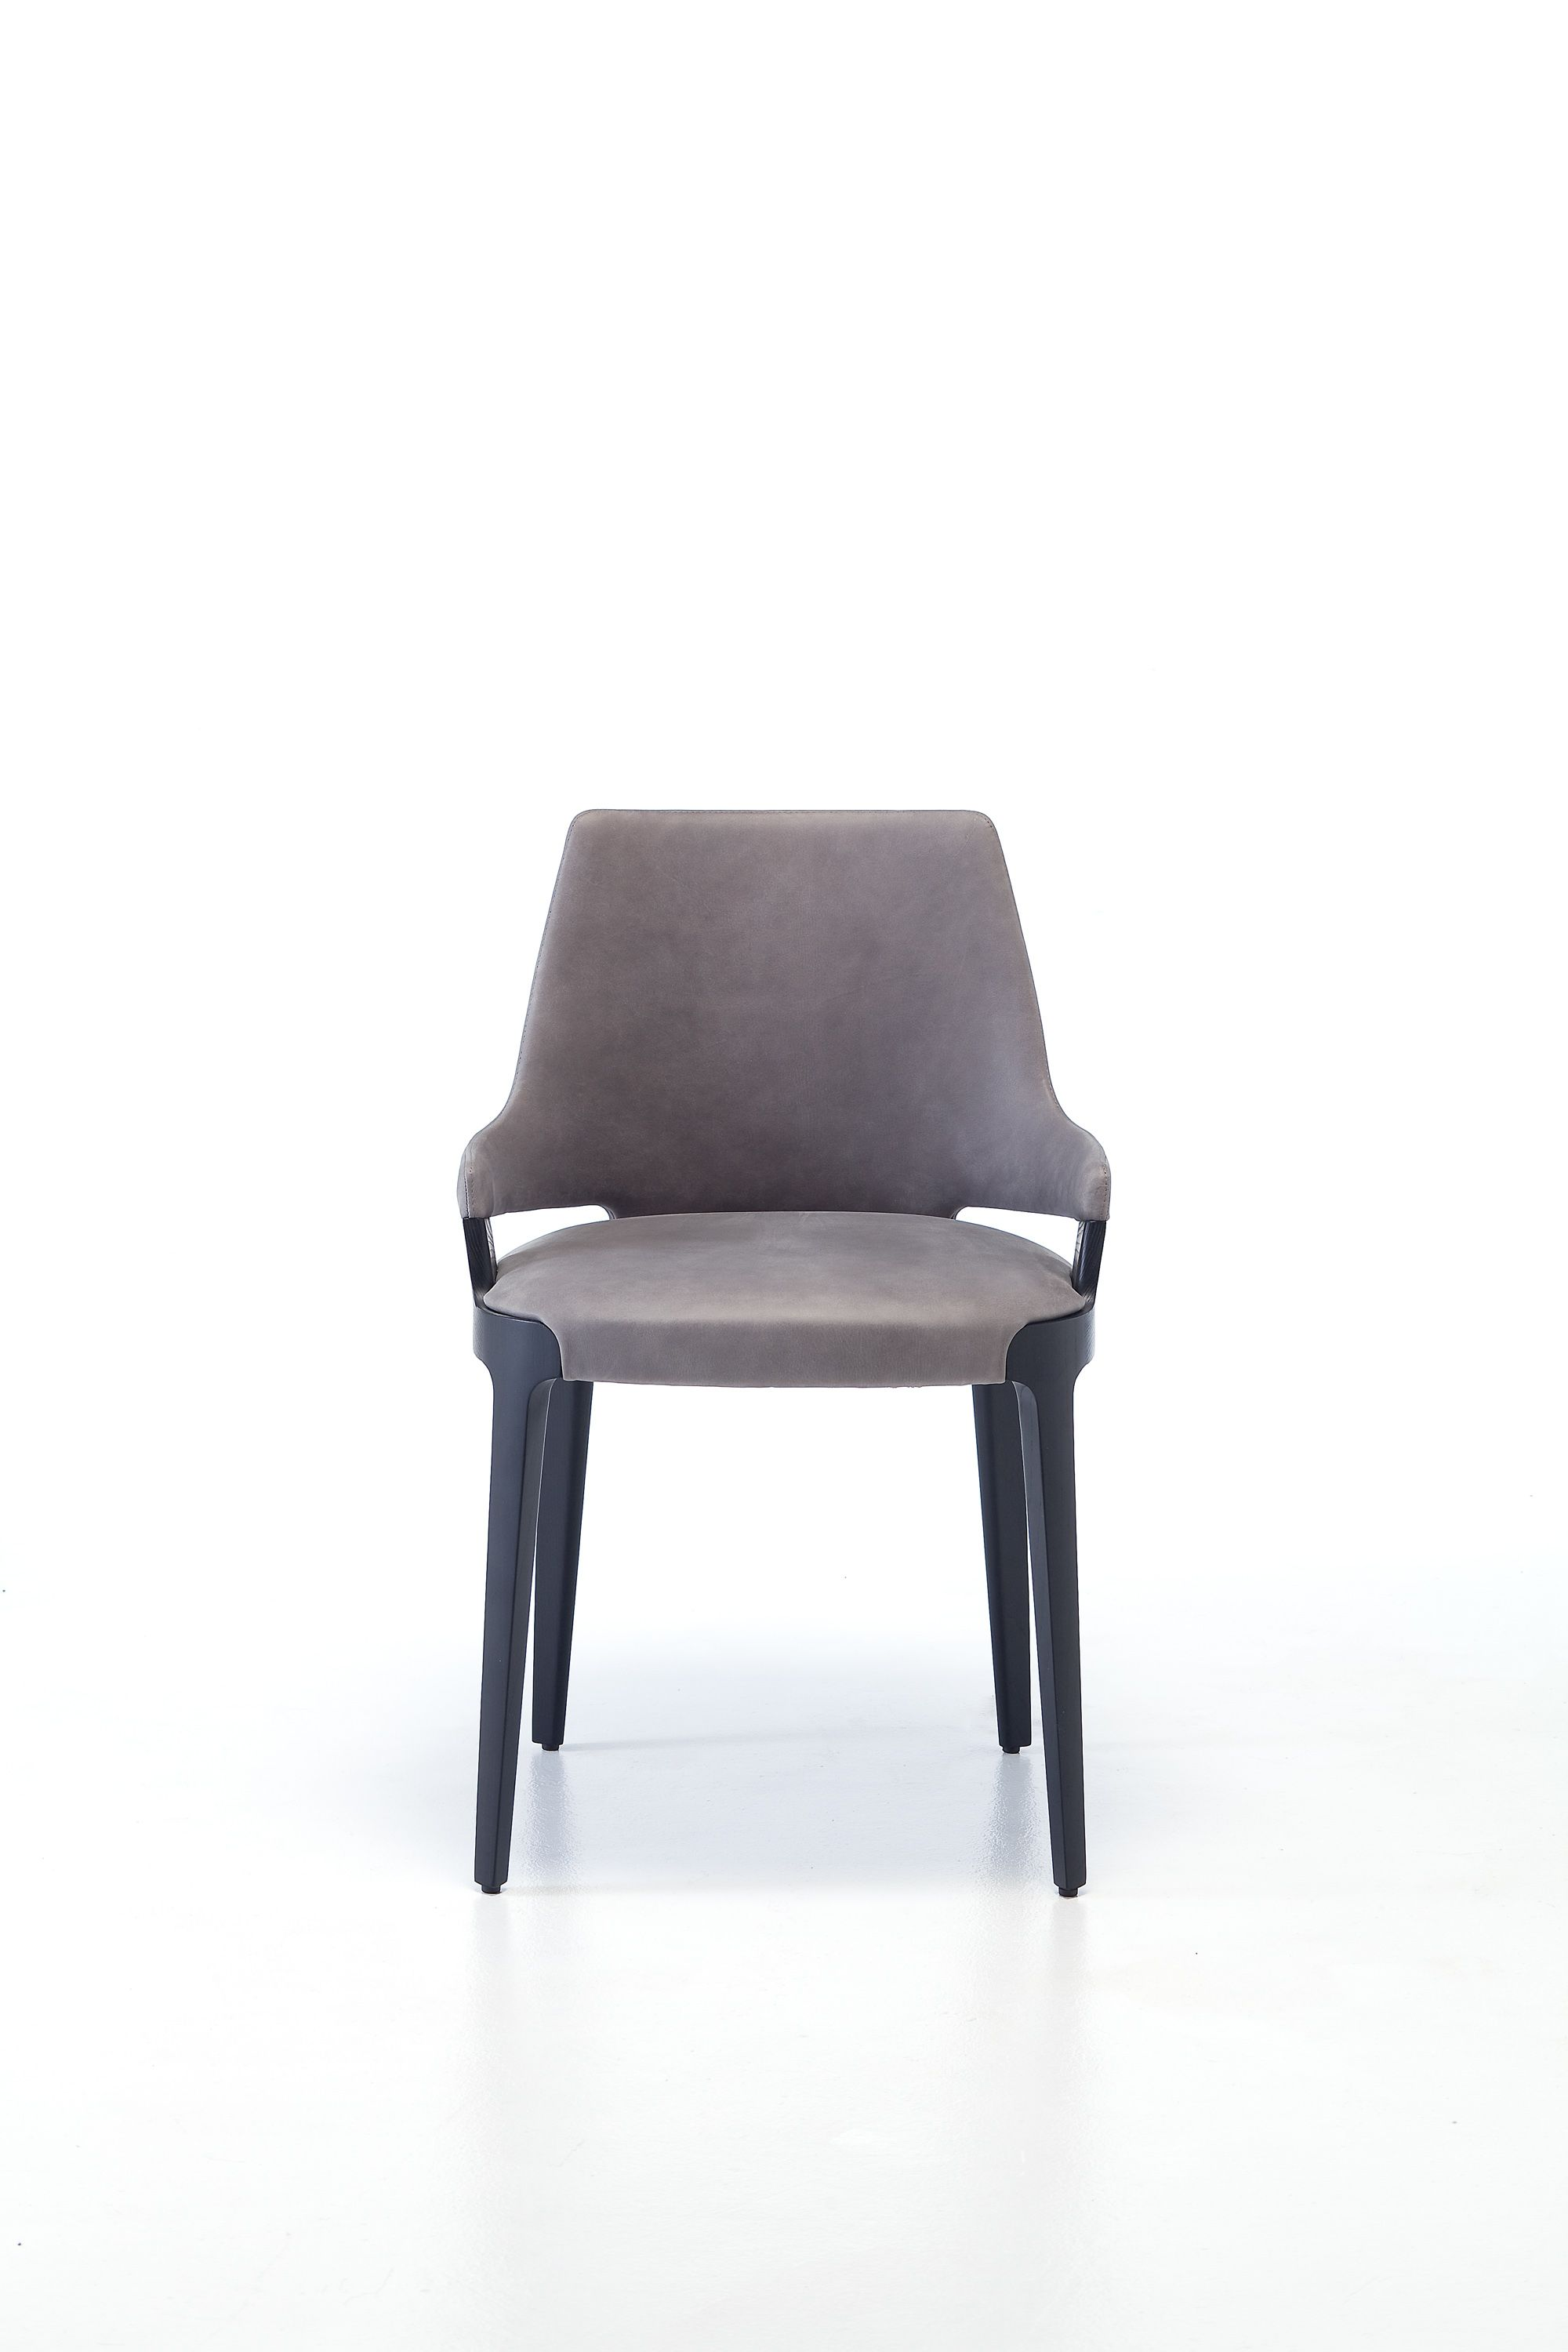 Potocco Velis Chair Velvet Dining Chairs Small Chair